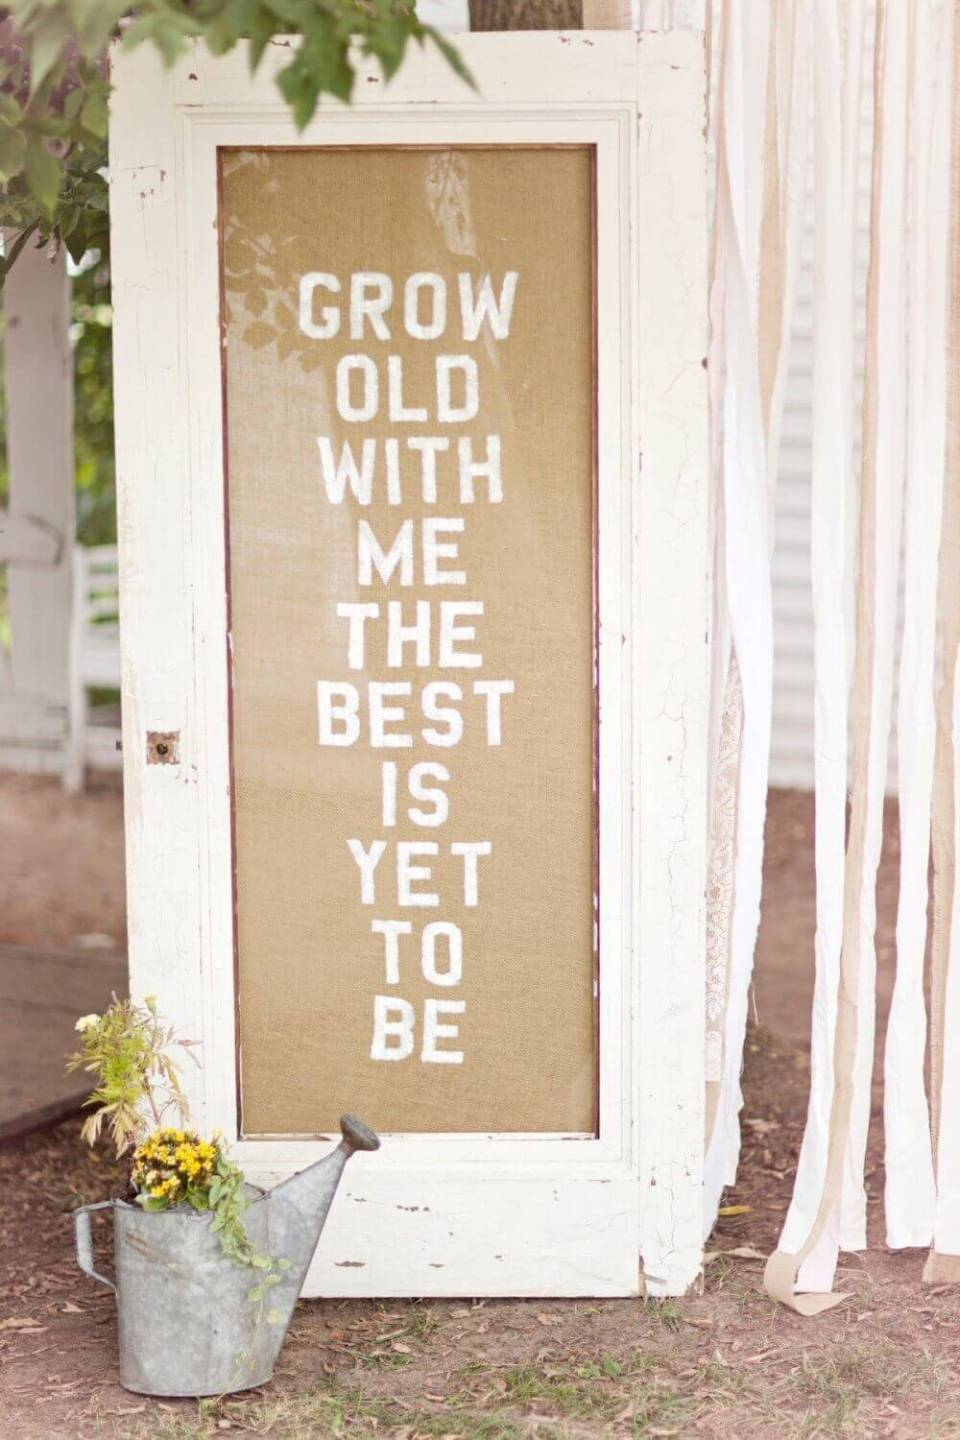 Inspiring Saying Painted on a Door | Creative Repurposed Old Door Ideas & Projects For Your Backyard